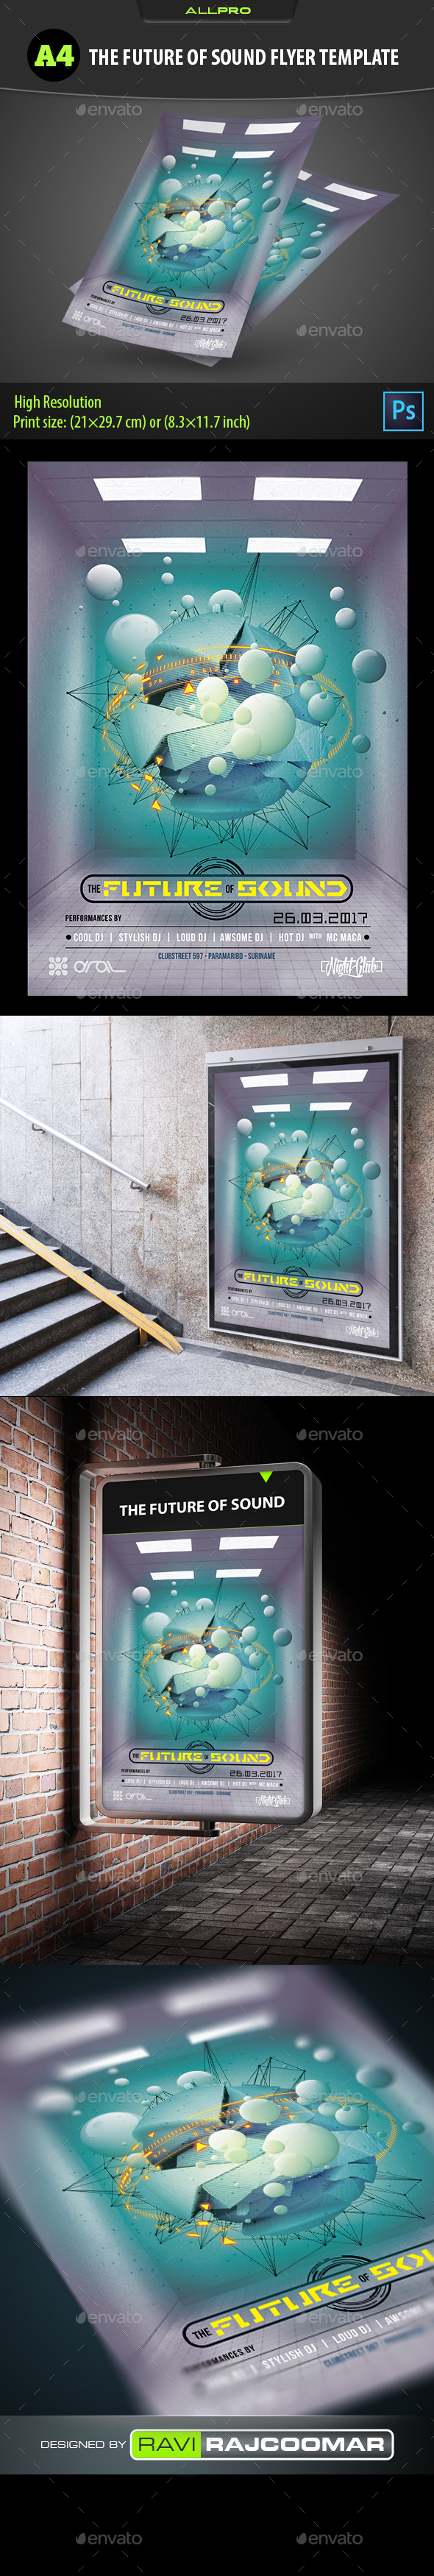 The Future Of Sound Flyer Template - Flyers Print Templates